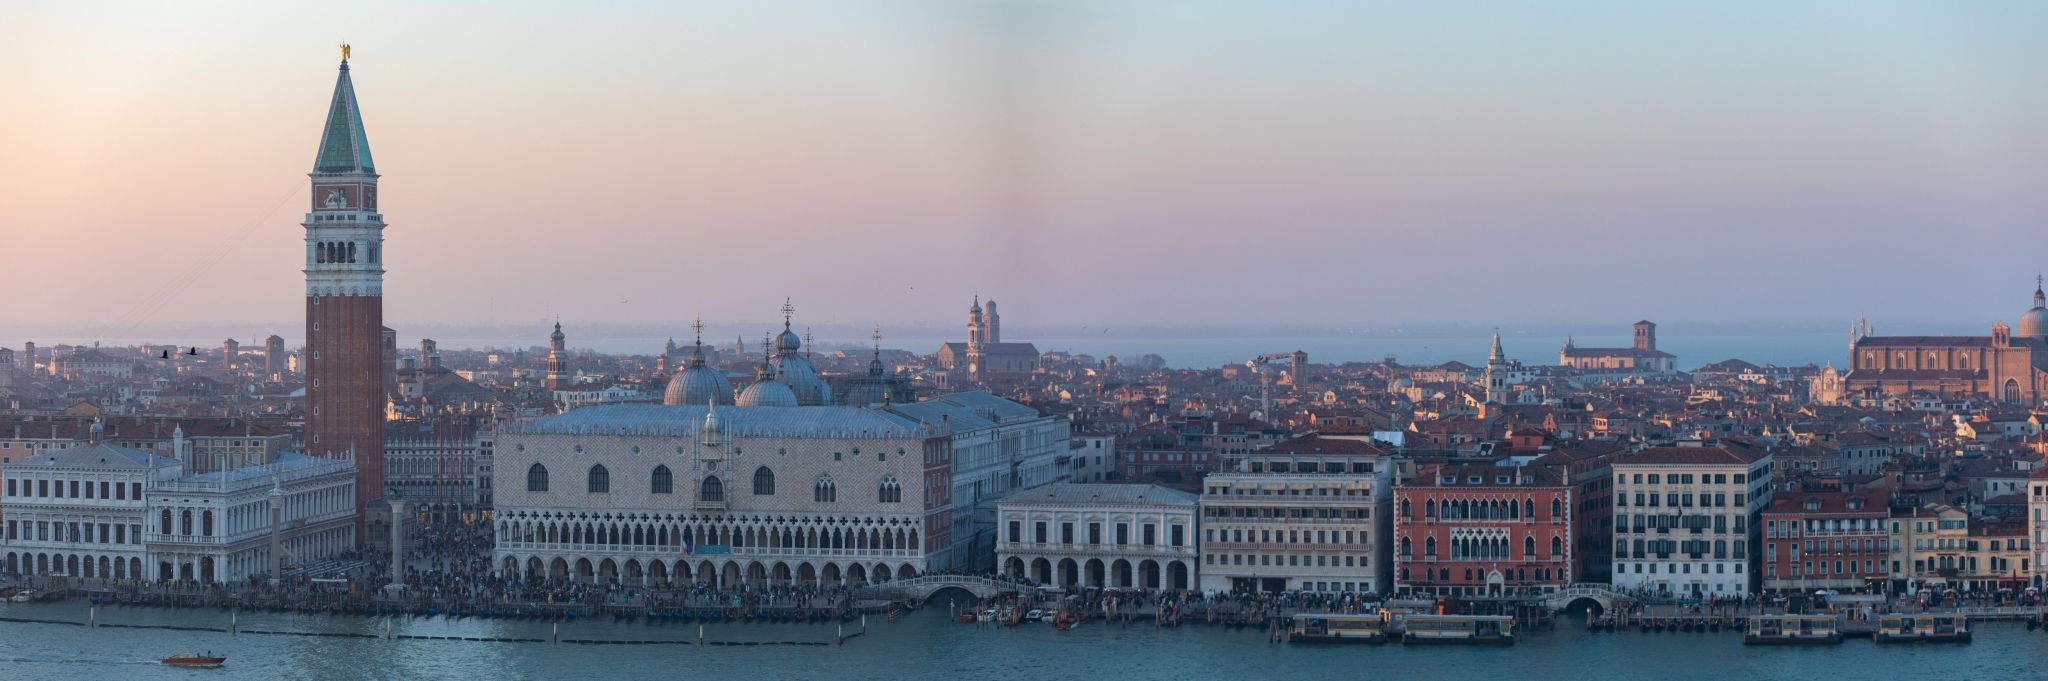 View in the church tower of San Giorgio in Venice, Italy